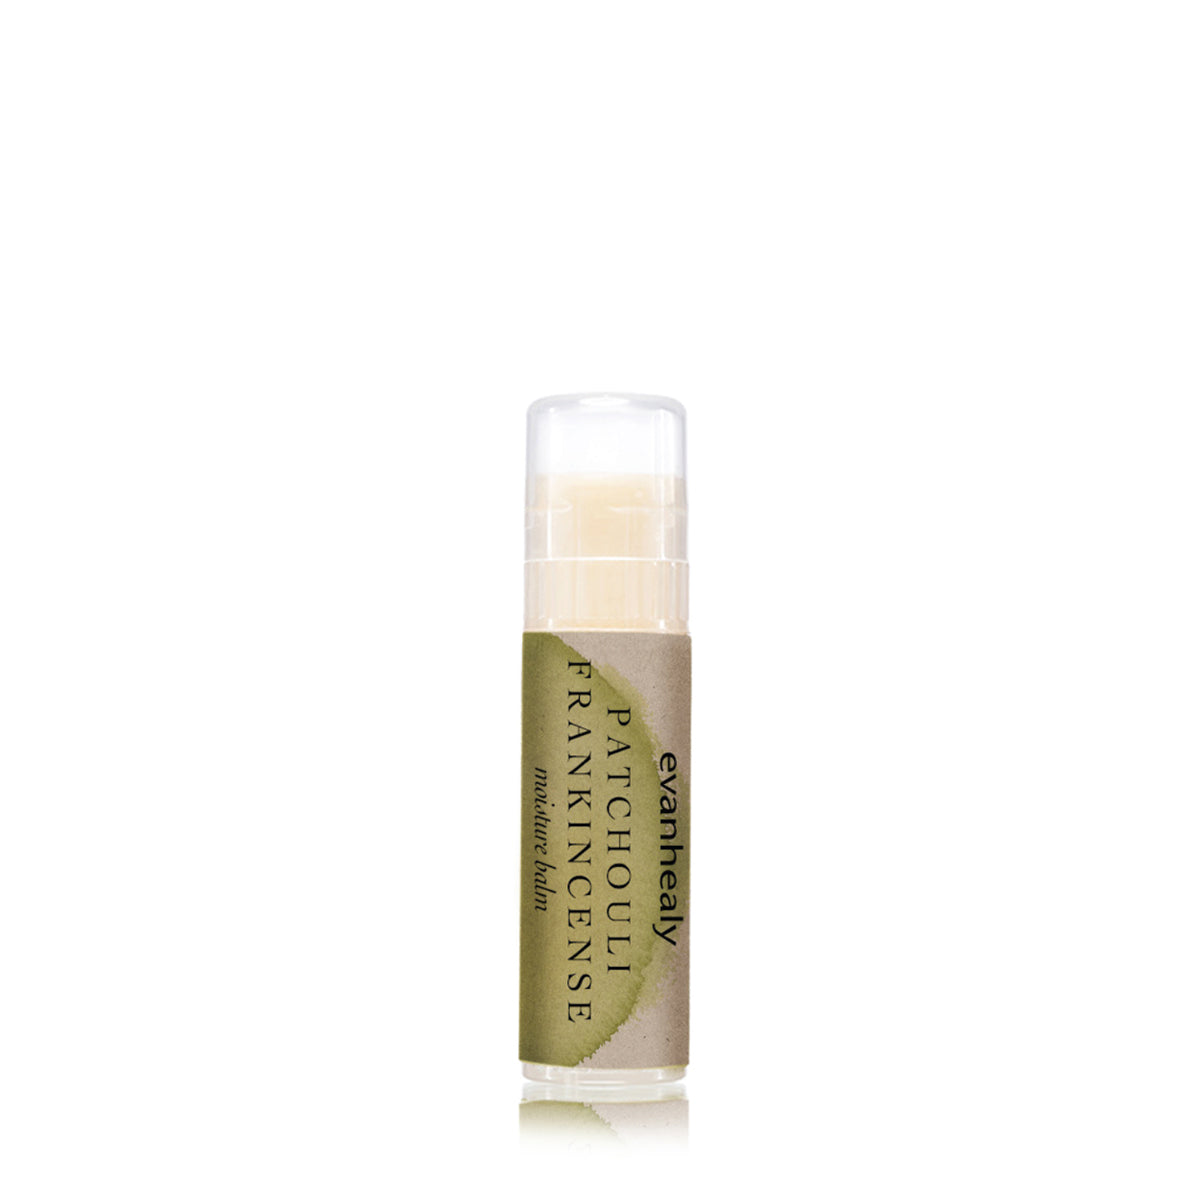 Patchouli Frankincense Rejuvenation Balm